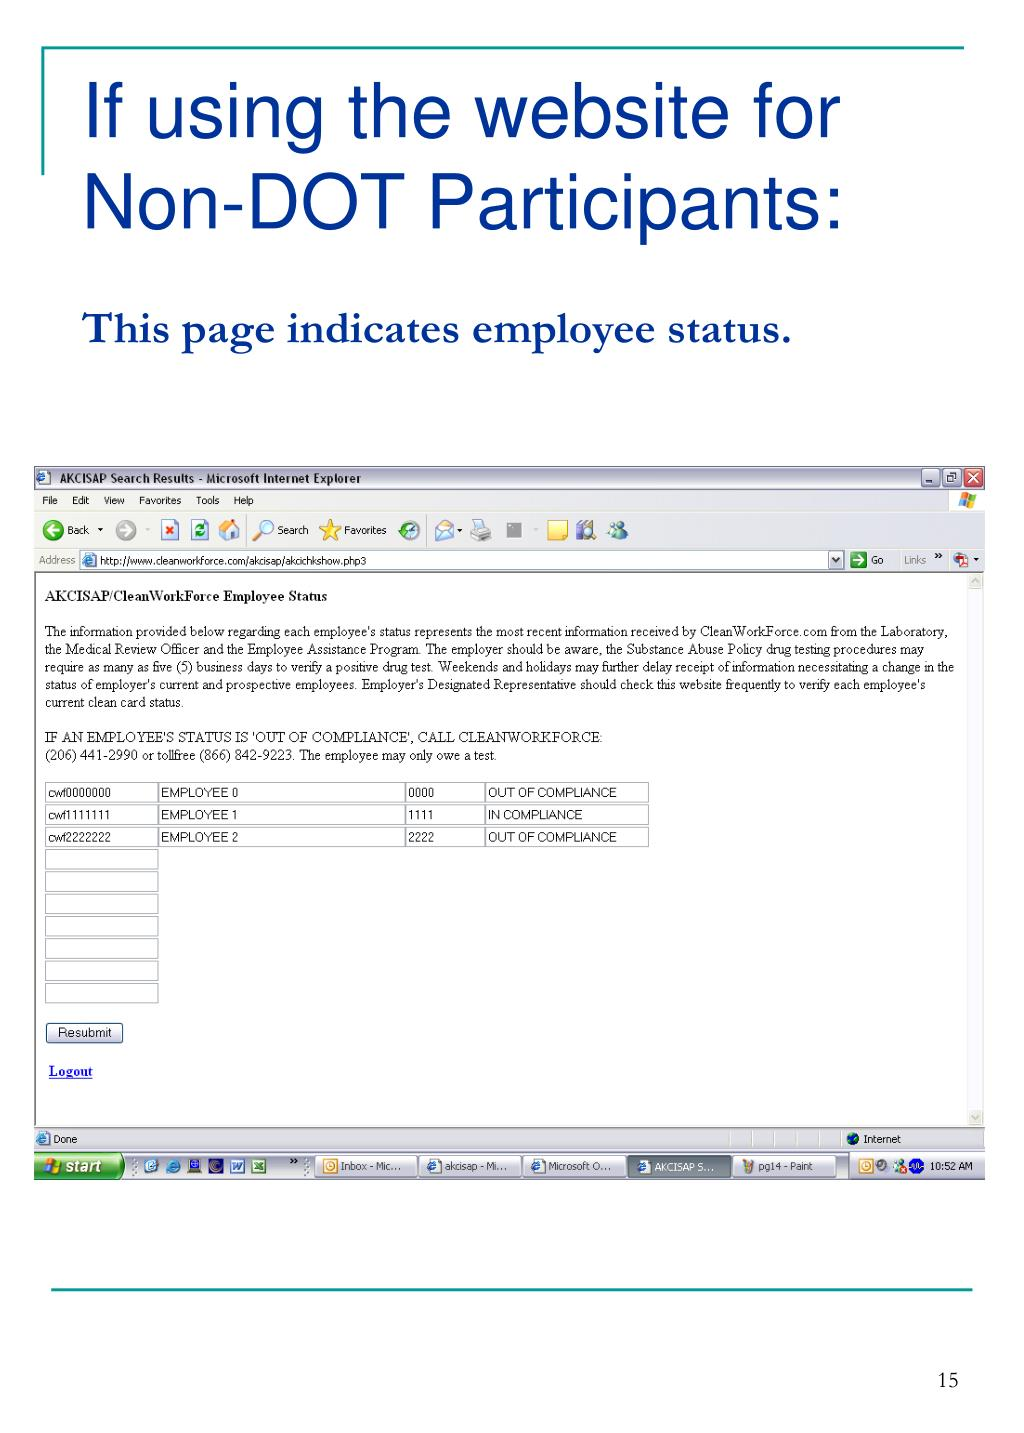 If using the website for Non-DOT Participants: